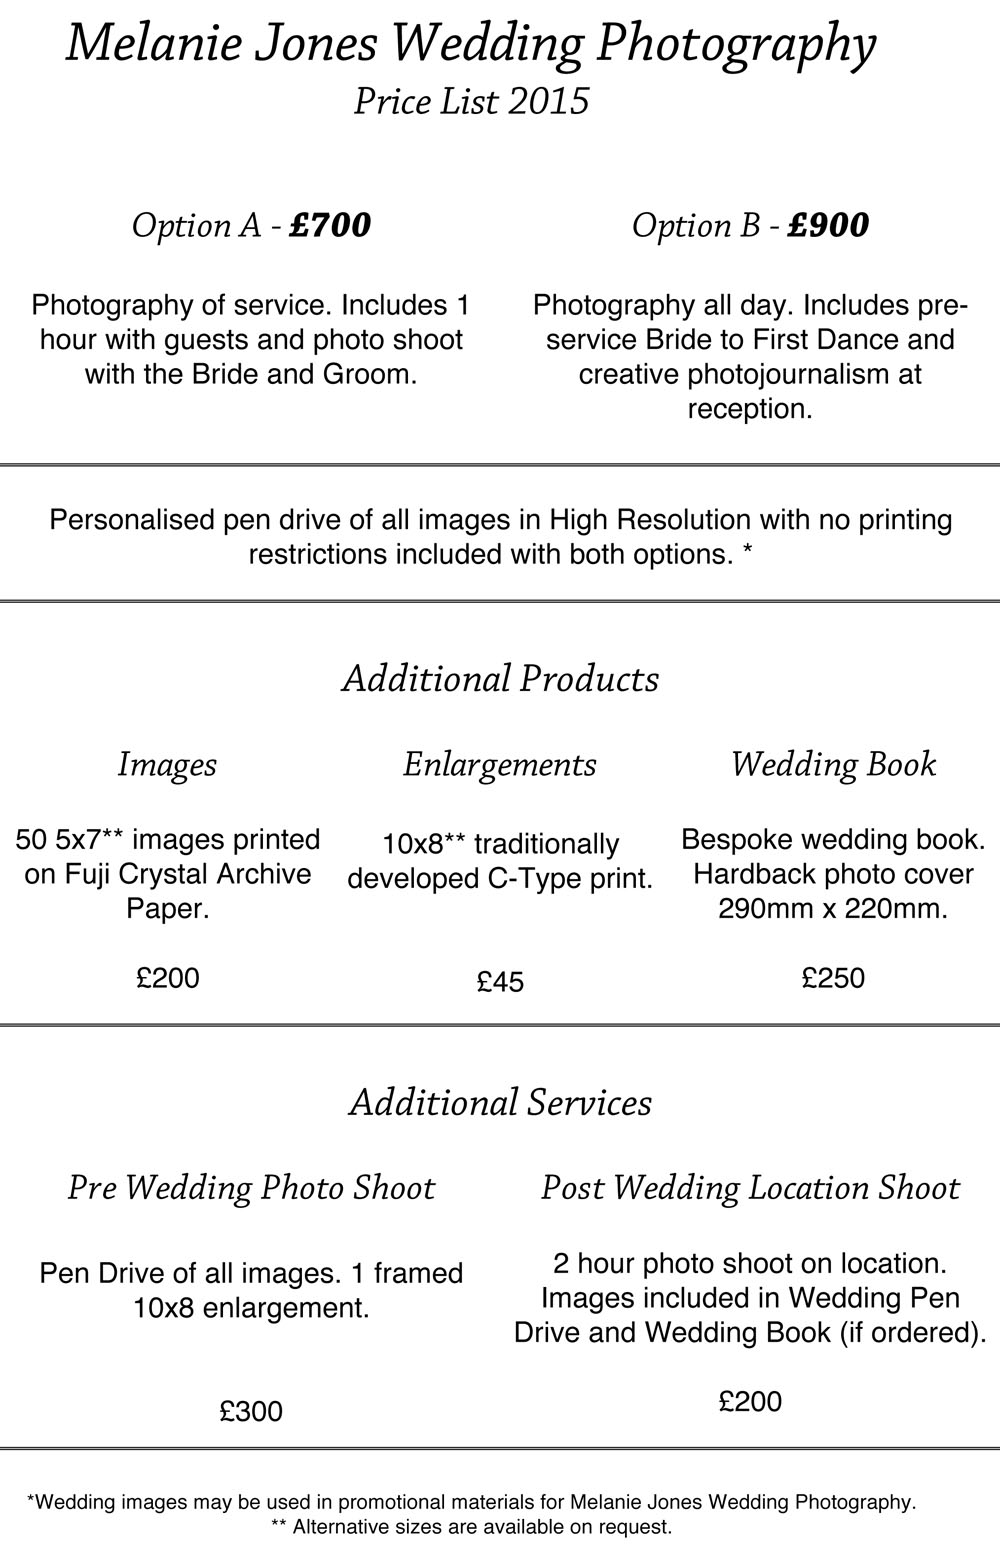 Wedding Photography prices 2015